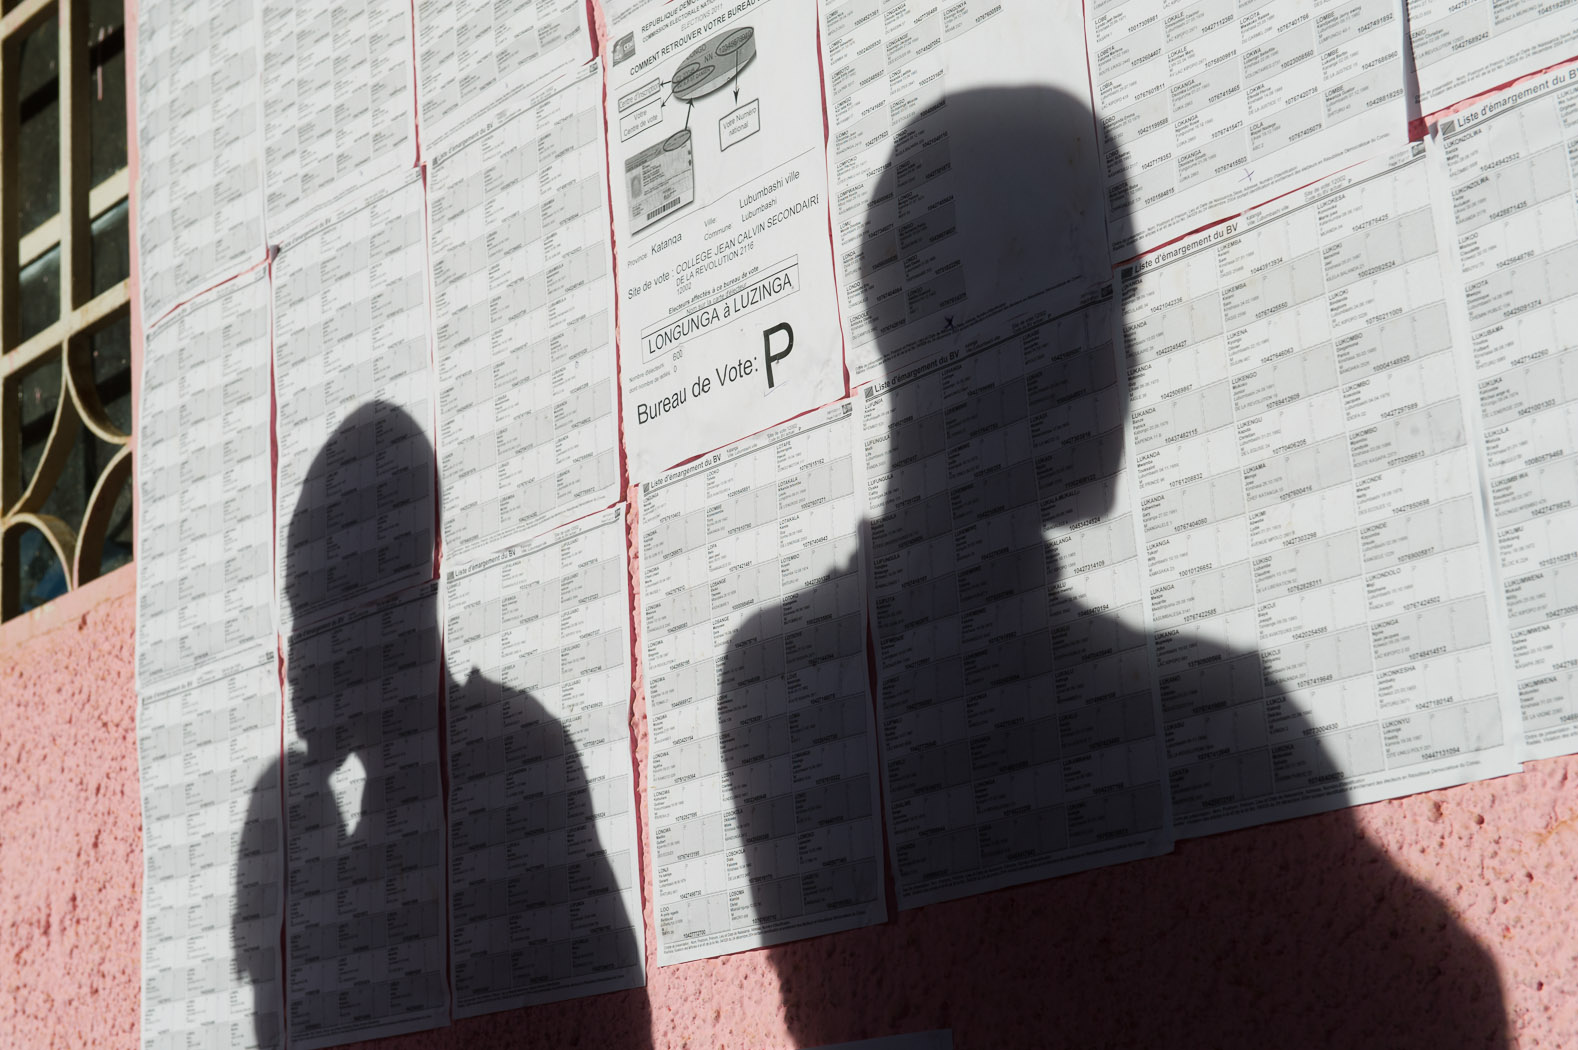 Voter lists were posted on the eve of the elections, but many people were unable to find their names at the polling station for which they were registered.